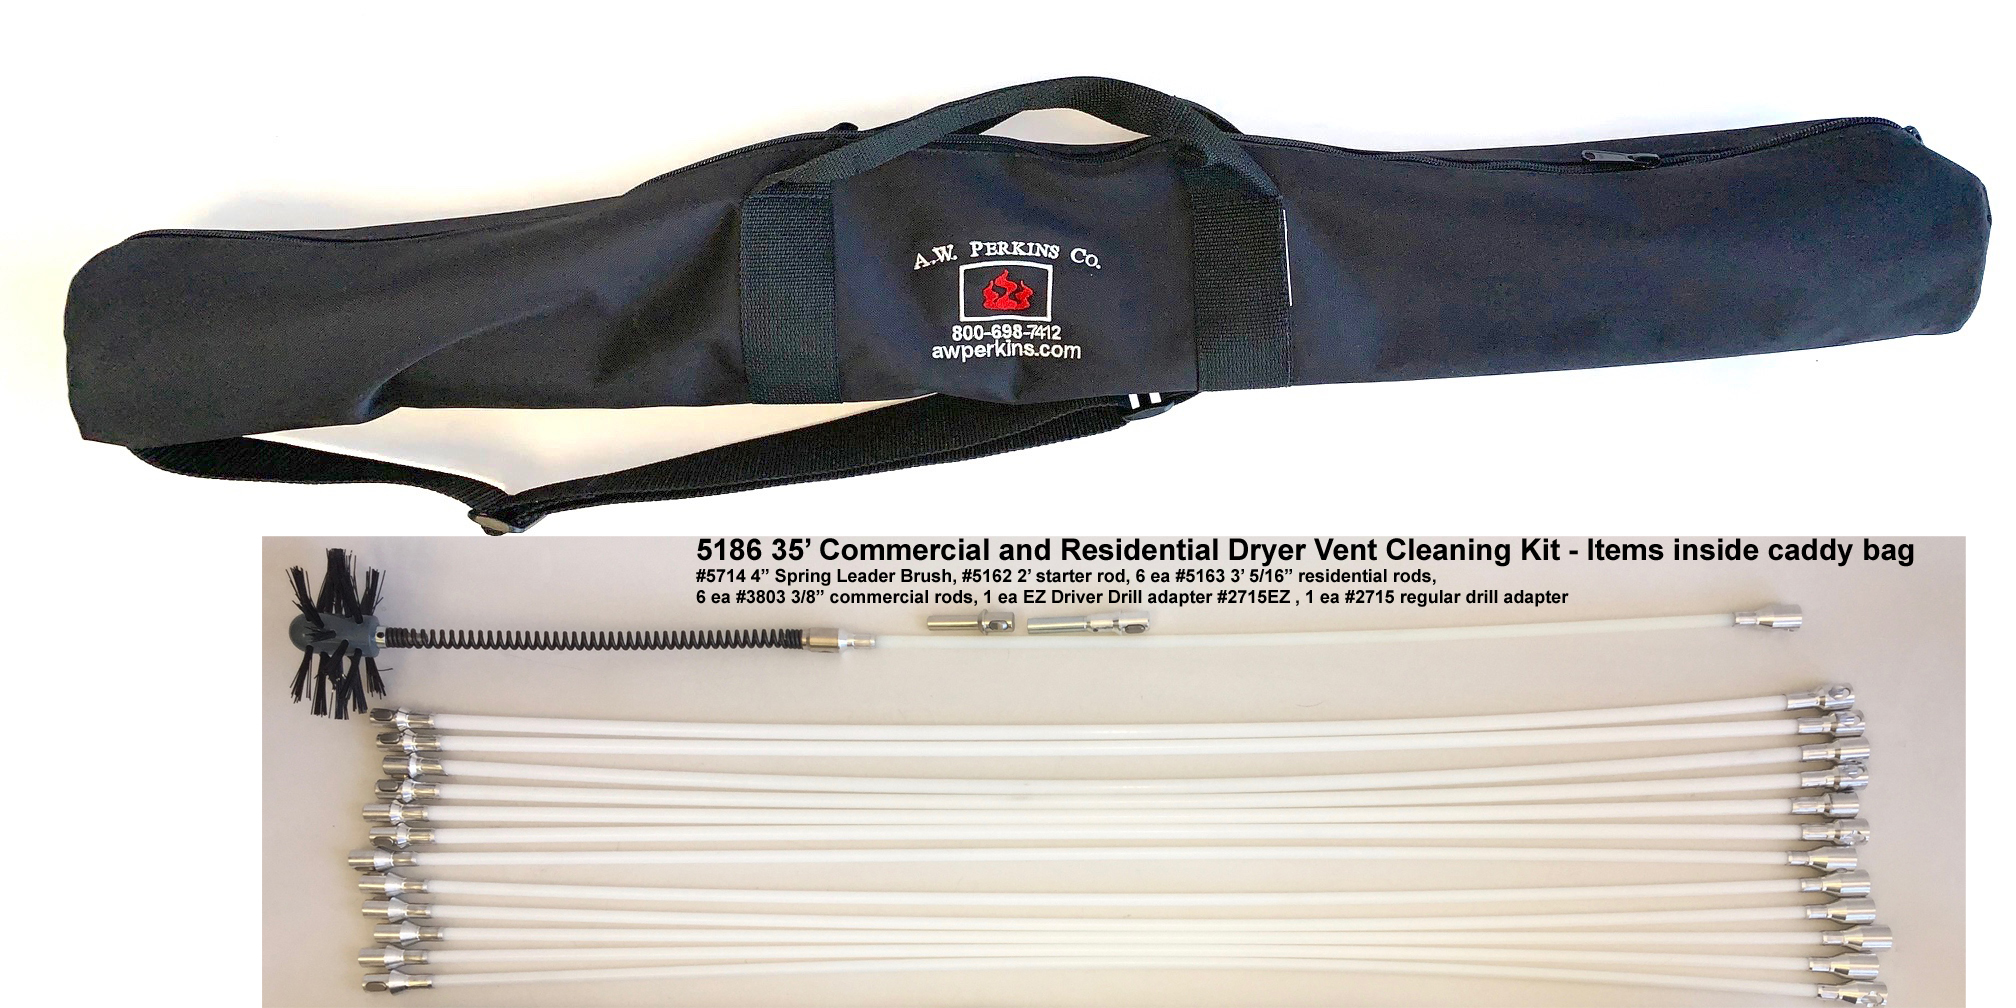 5186 35' Commercial and Residential Rotary Brush Dryer Vent Cleaning Kit w/Nylon Caddy